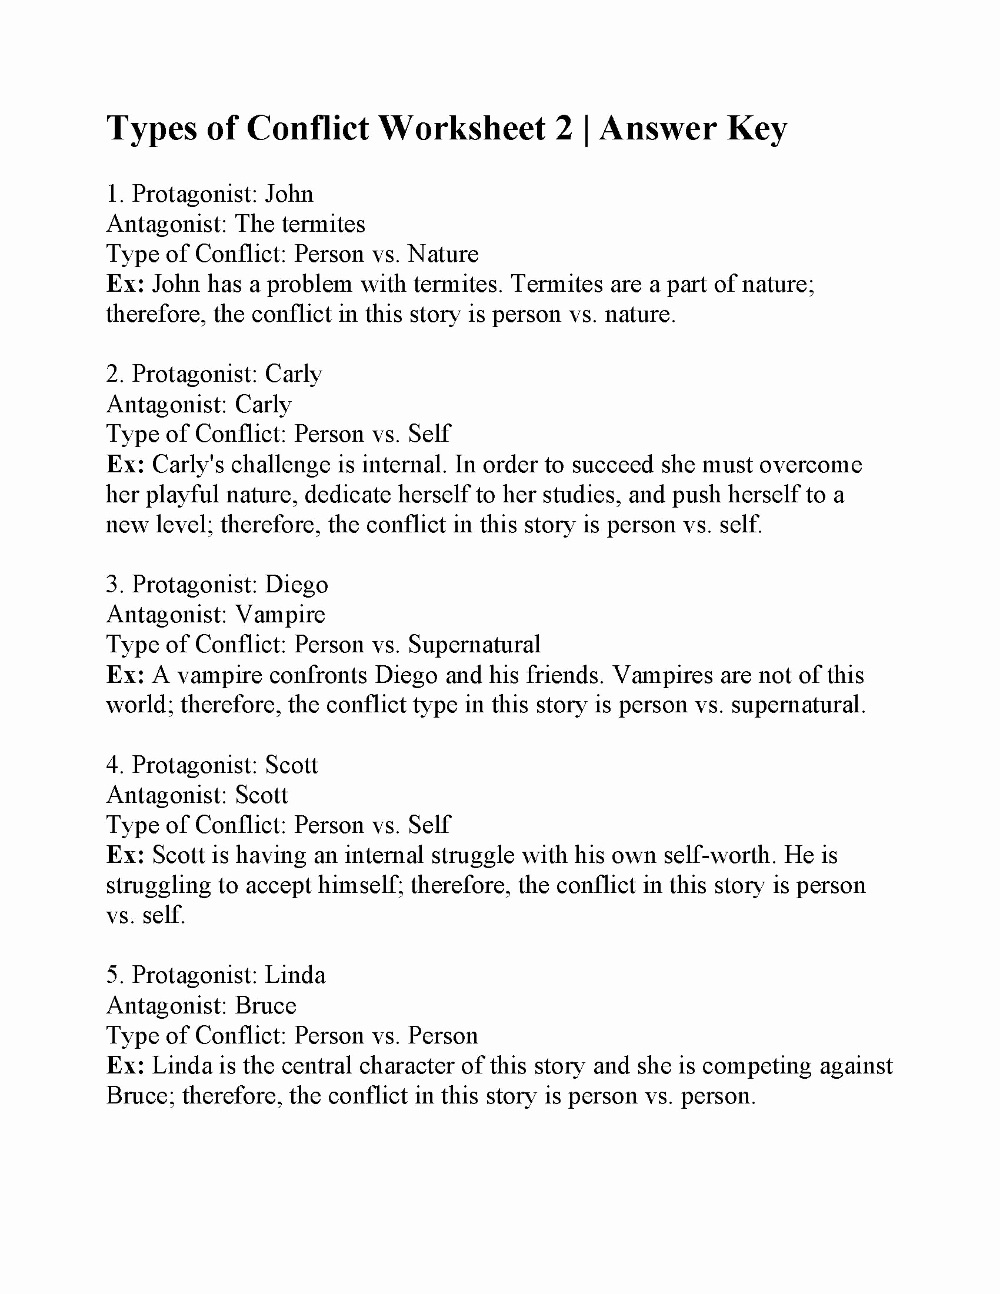 Conflict Worksheets Pdf New Types Of Conflict Worksheet 2 Answers